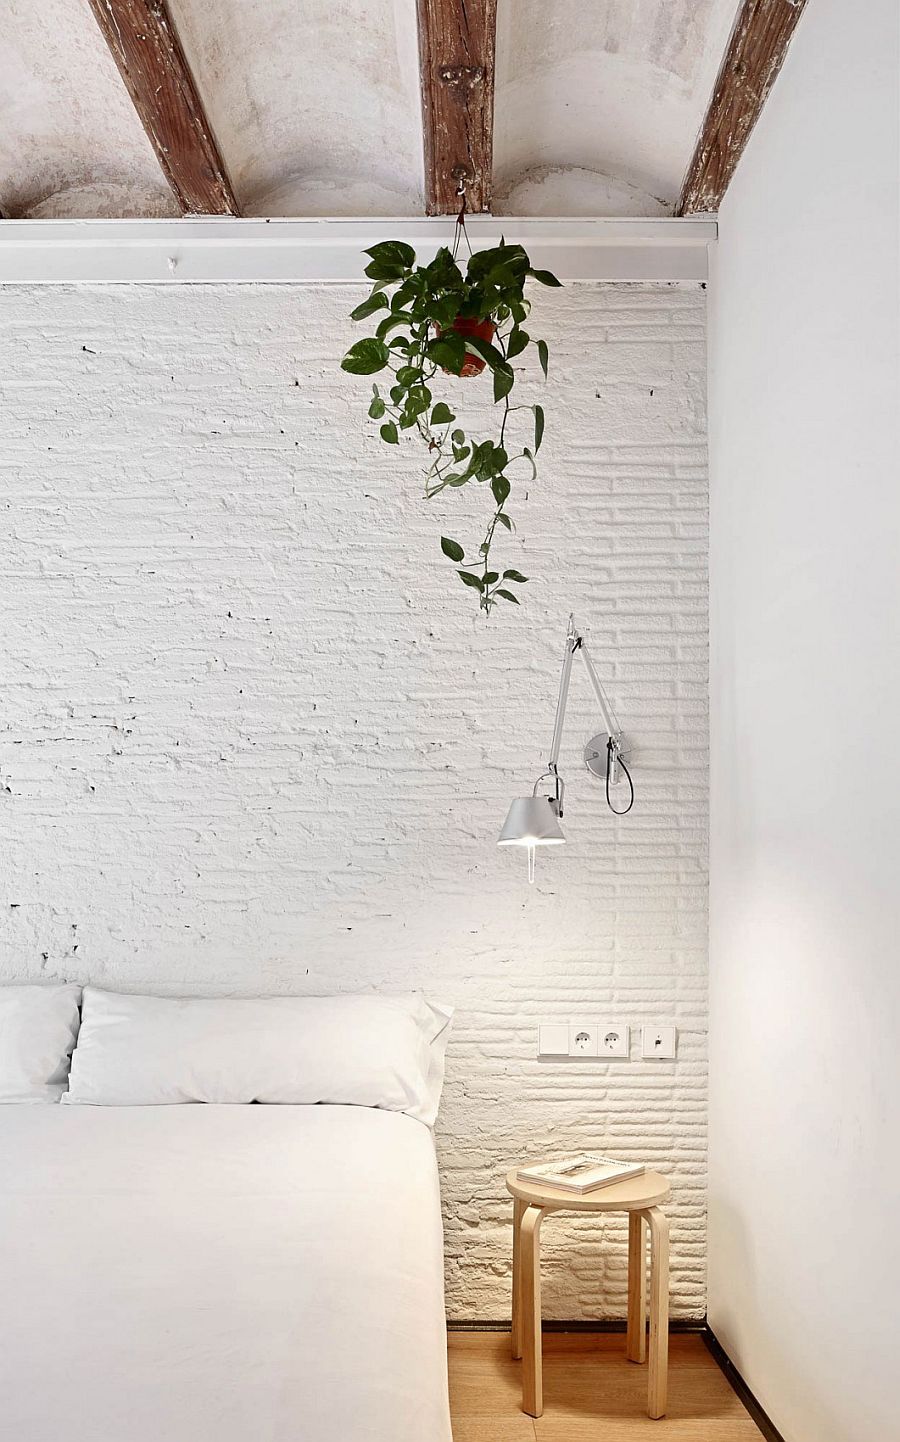 White painted ceiling, brick walls and exposed wooden beams of the Barcelona home